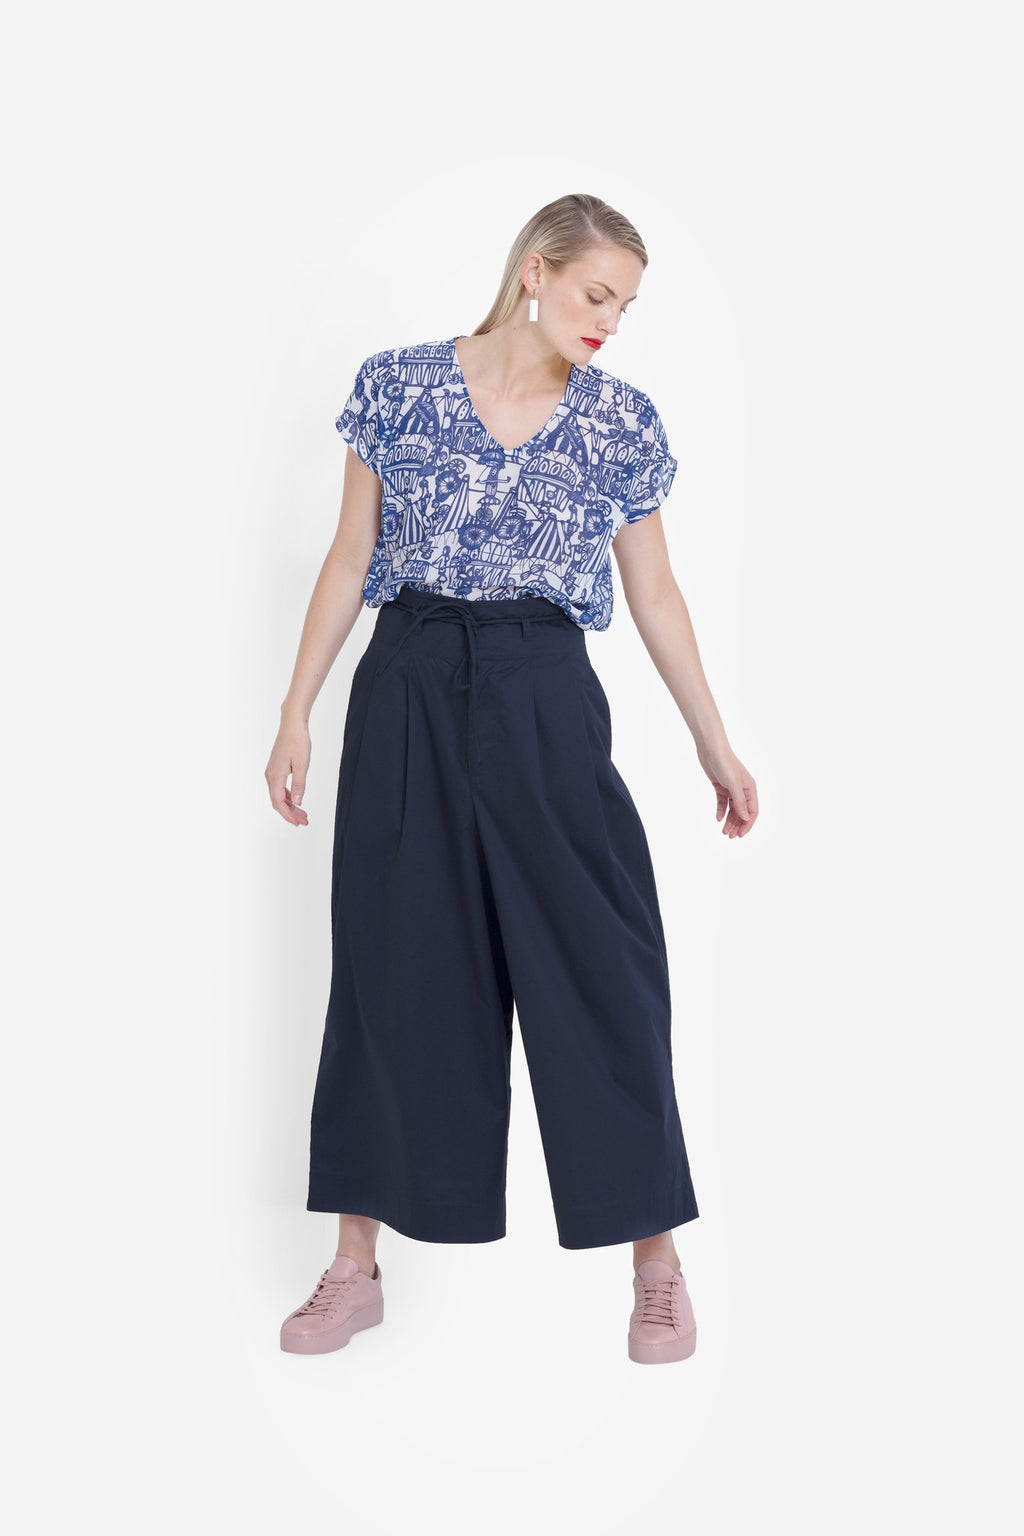 Buy Nyland Pants from ELK The Label at PAYA boutique